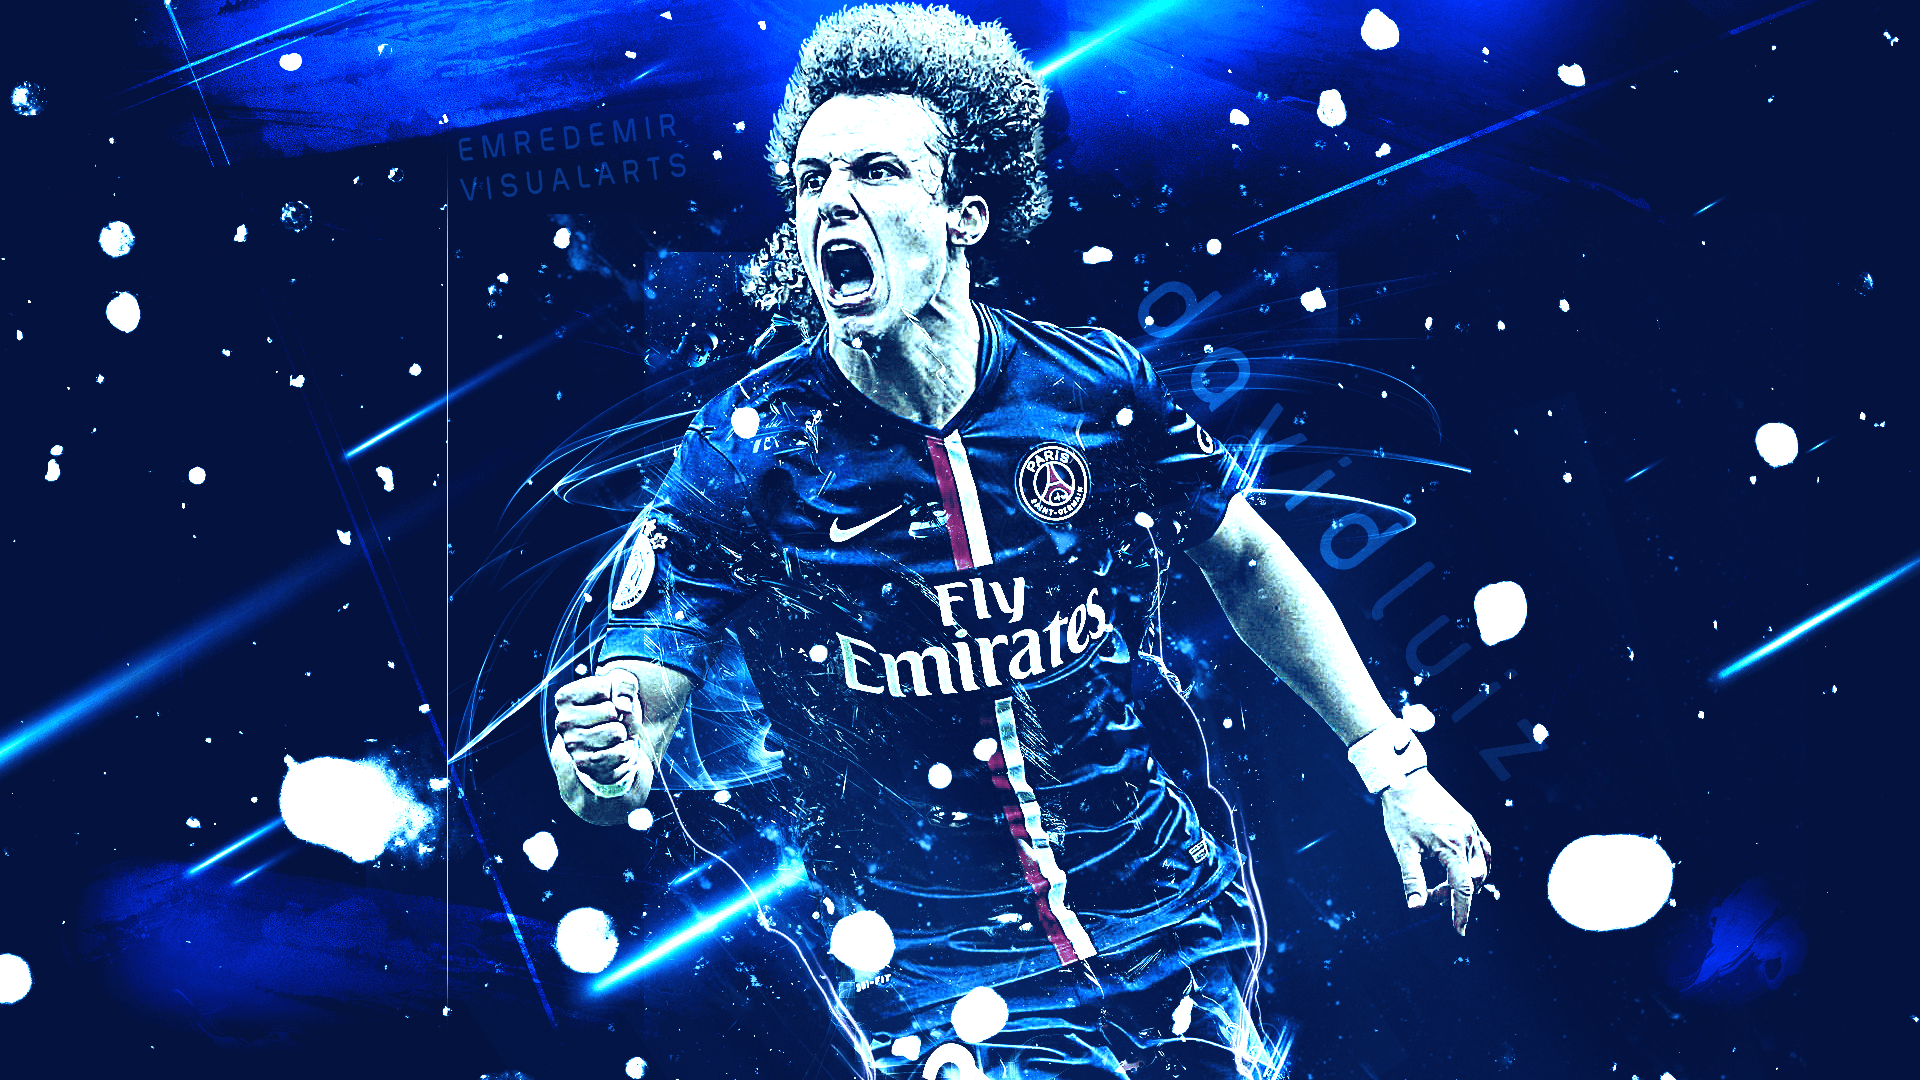 David Luiz HD Wallpapers 7wallpapersnet 1920x1080